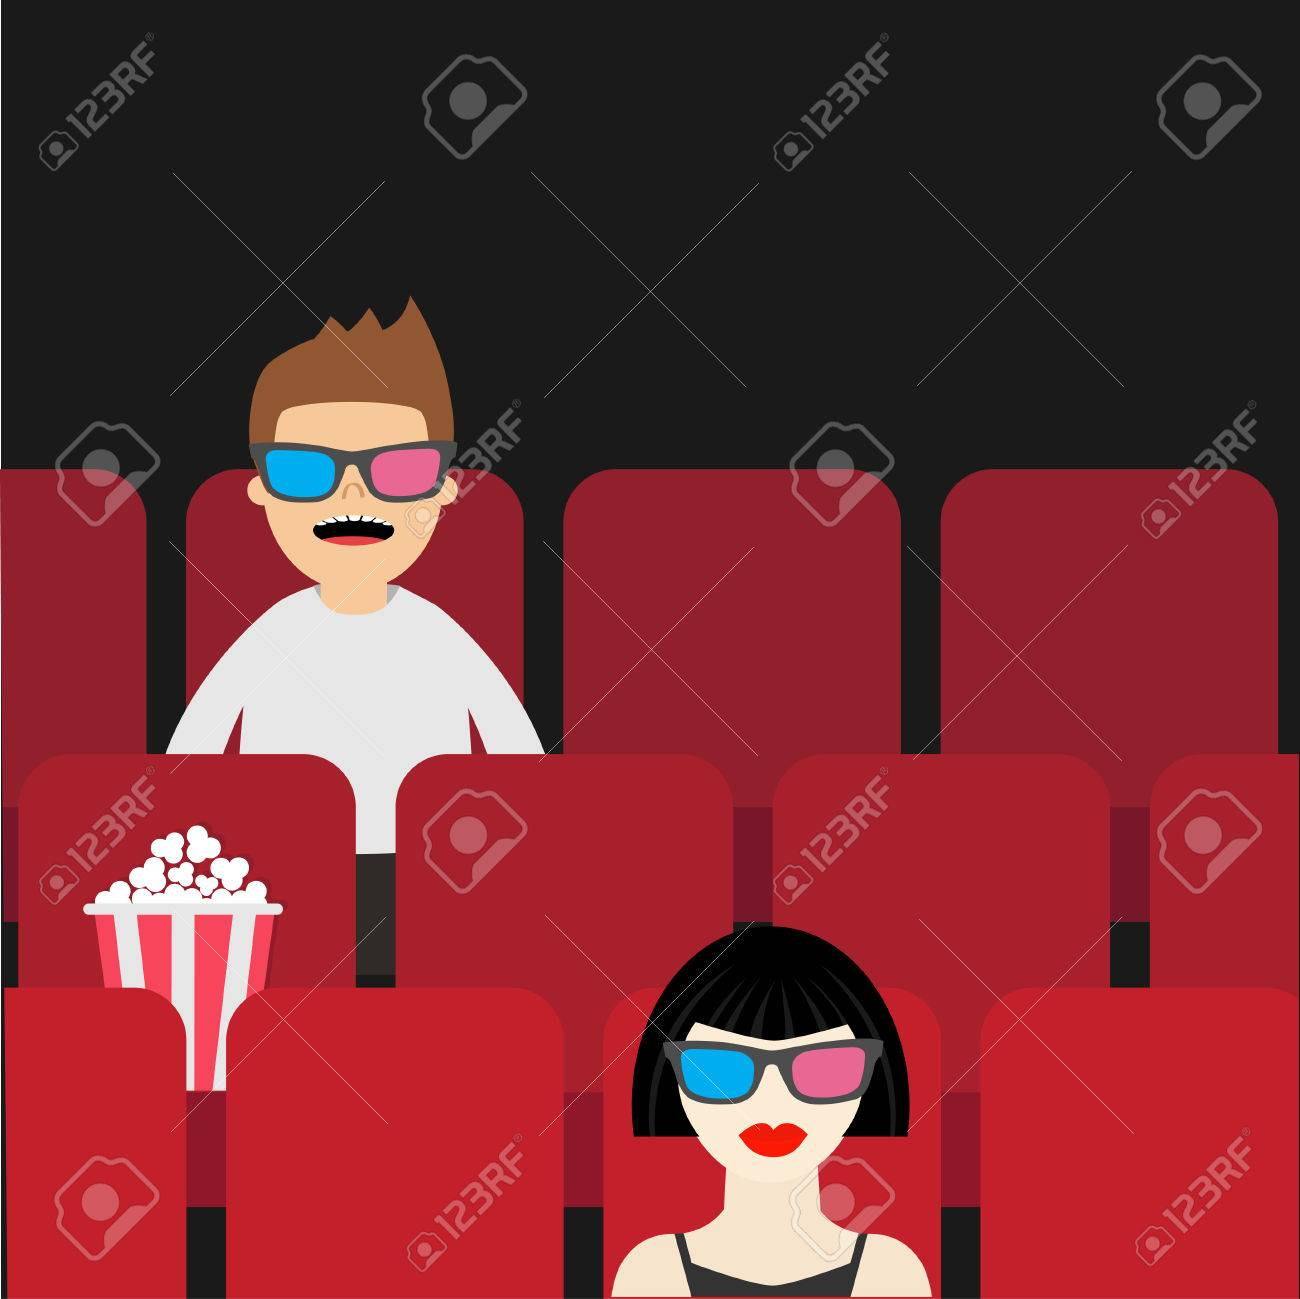 People Sitting In Movie Theater Film Show Cinema Background Royalty Free Cliparts Vectors And Stock Illustration Image 56434153